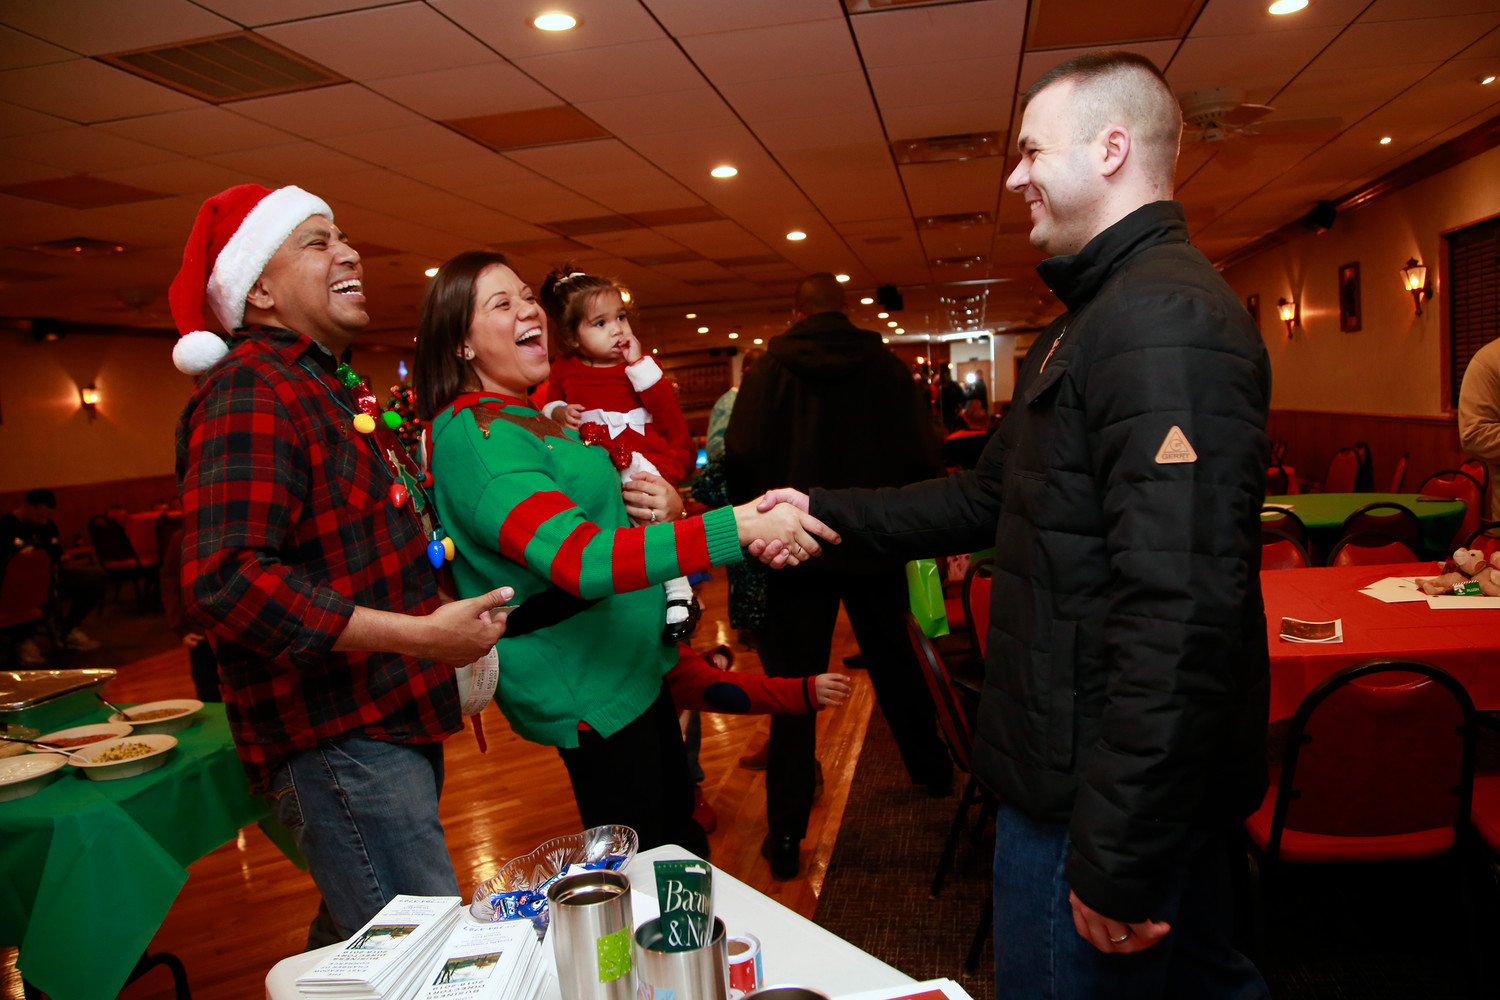 "The East Meadow Chamber of Commerce and Enrique Reyna, 42, who serves in the Army and lives in East Meadow, hosted a holiday party celebrating local military personnel on Dec. 21 at the East Meadow Benevolent Hall. Reyna, far left, and 1st Sgt. Urbina Abarua welcomed Staff Sgt. Cory Krigbaum to what Reyna called ""a new Christmas tradition."""